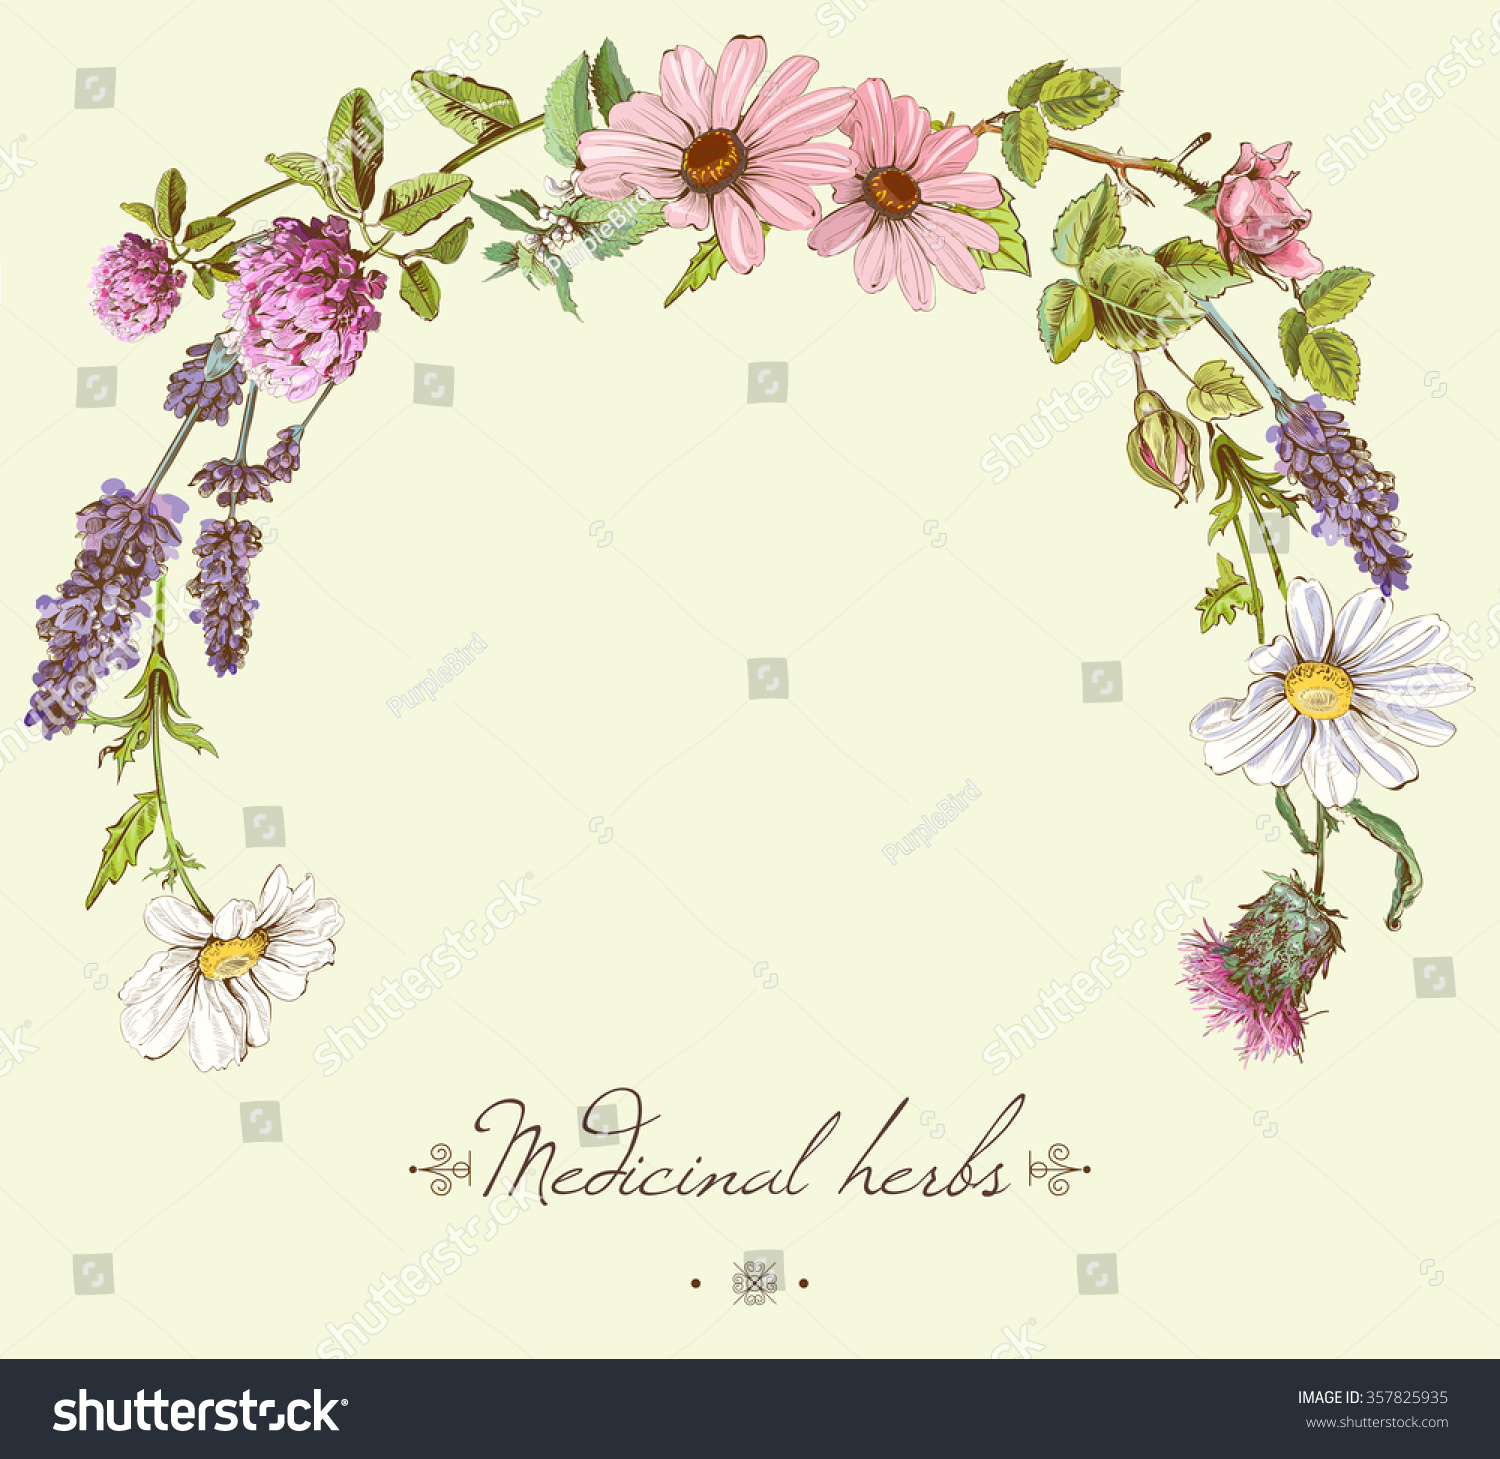 Vector Vintage Hand Drawn Frame With Wild Flowers And